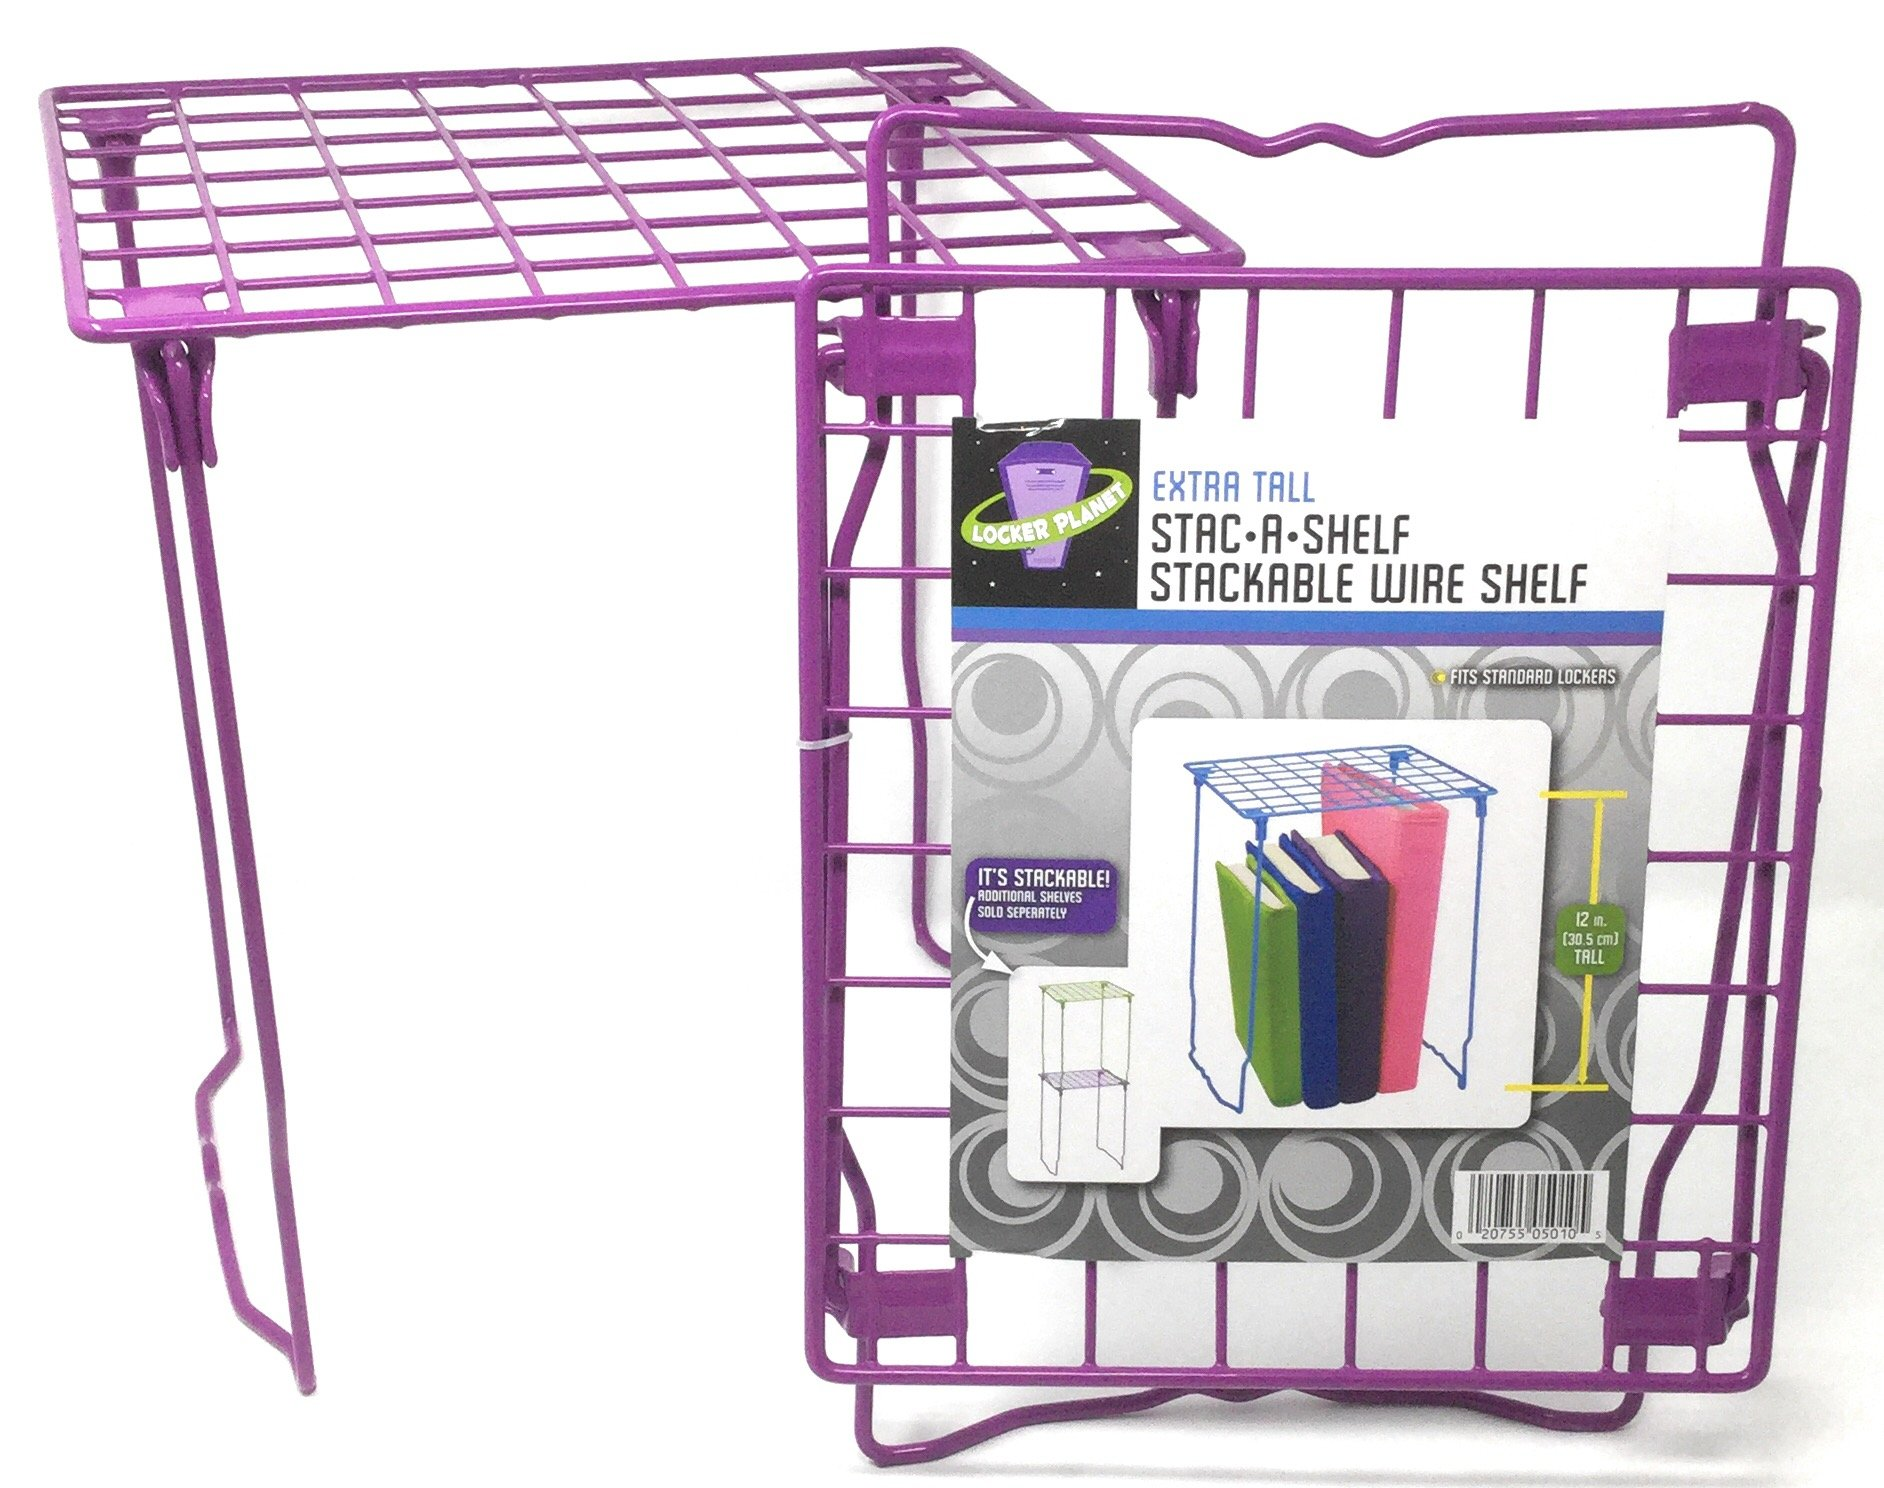 Locker Planet Purple - 12 inch Extra Tall Stackable Wire Shelf